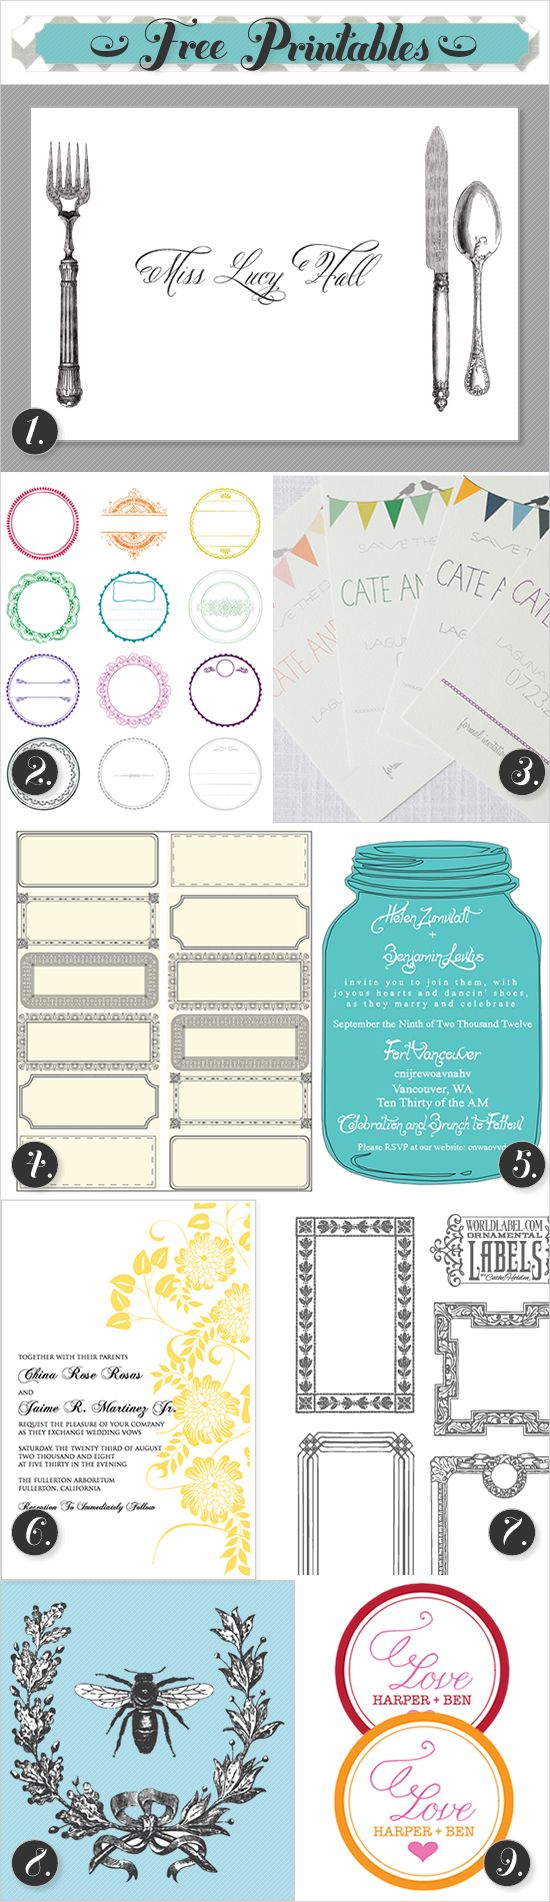 Beautiful free printables!